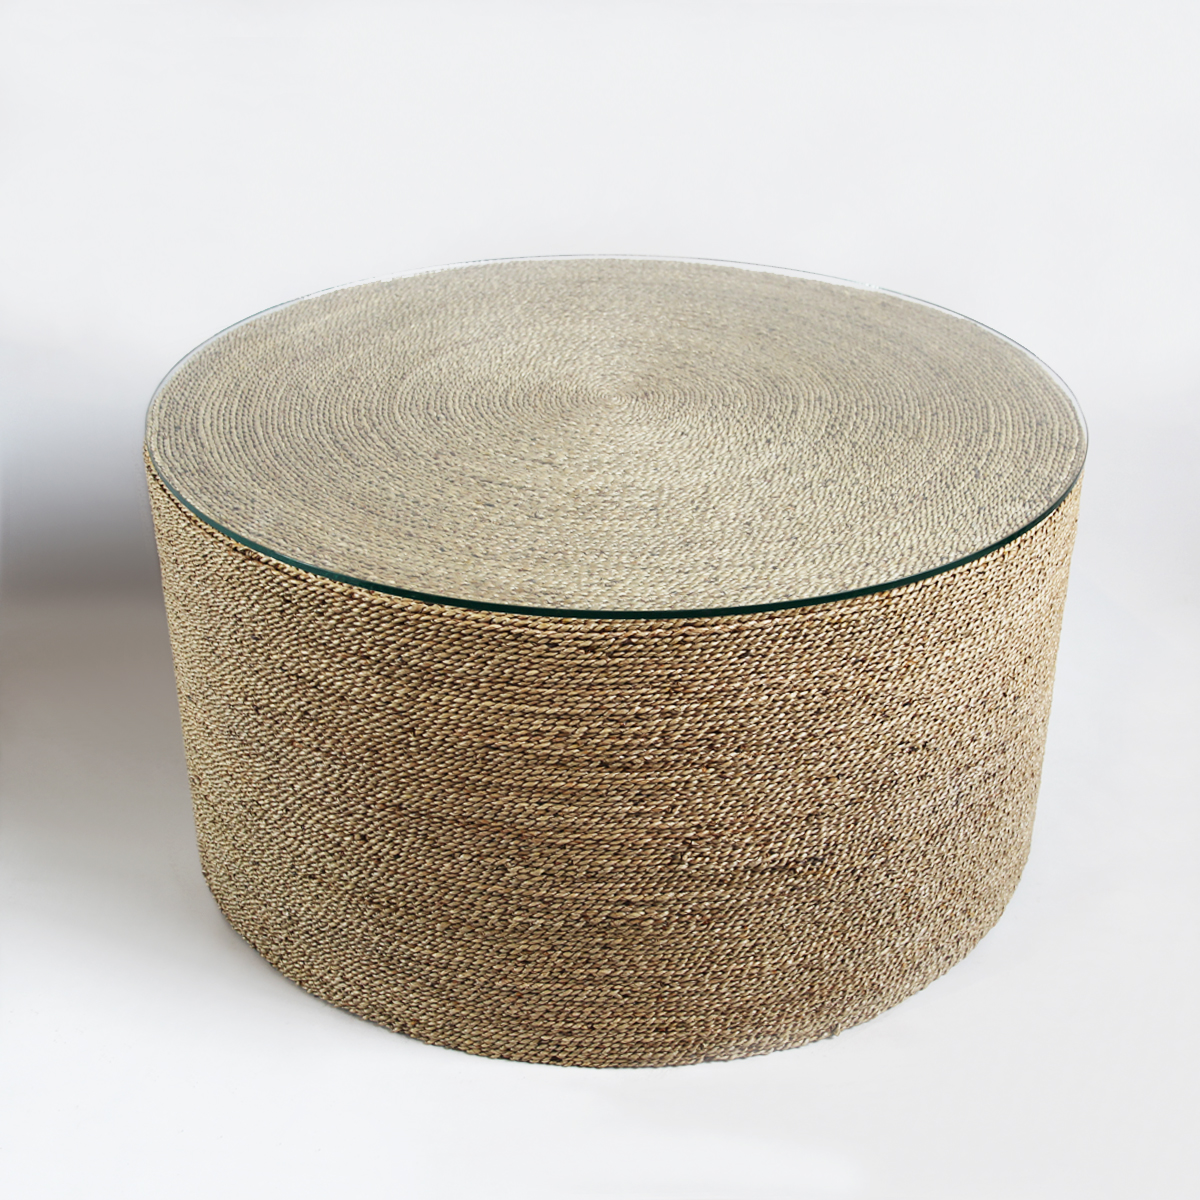 Round Seagrass Rope Table Furniture Mix Furniture